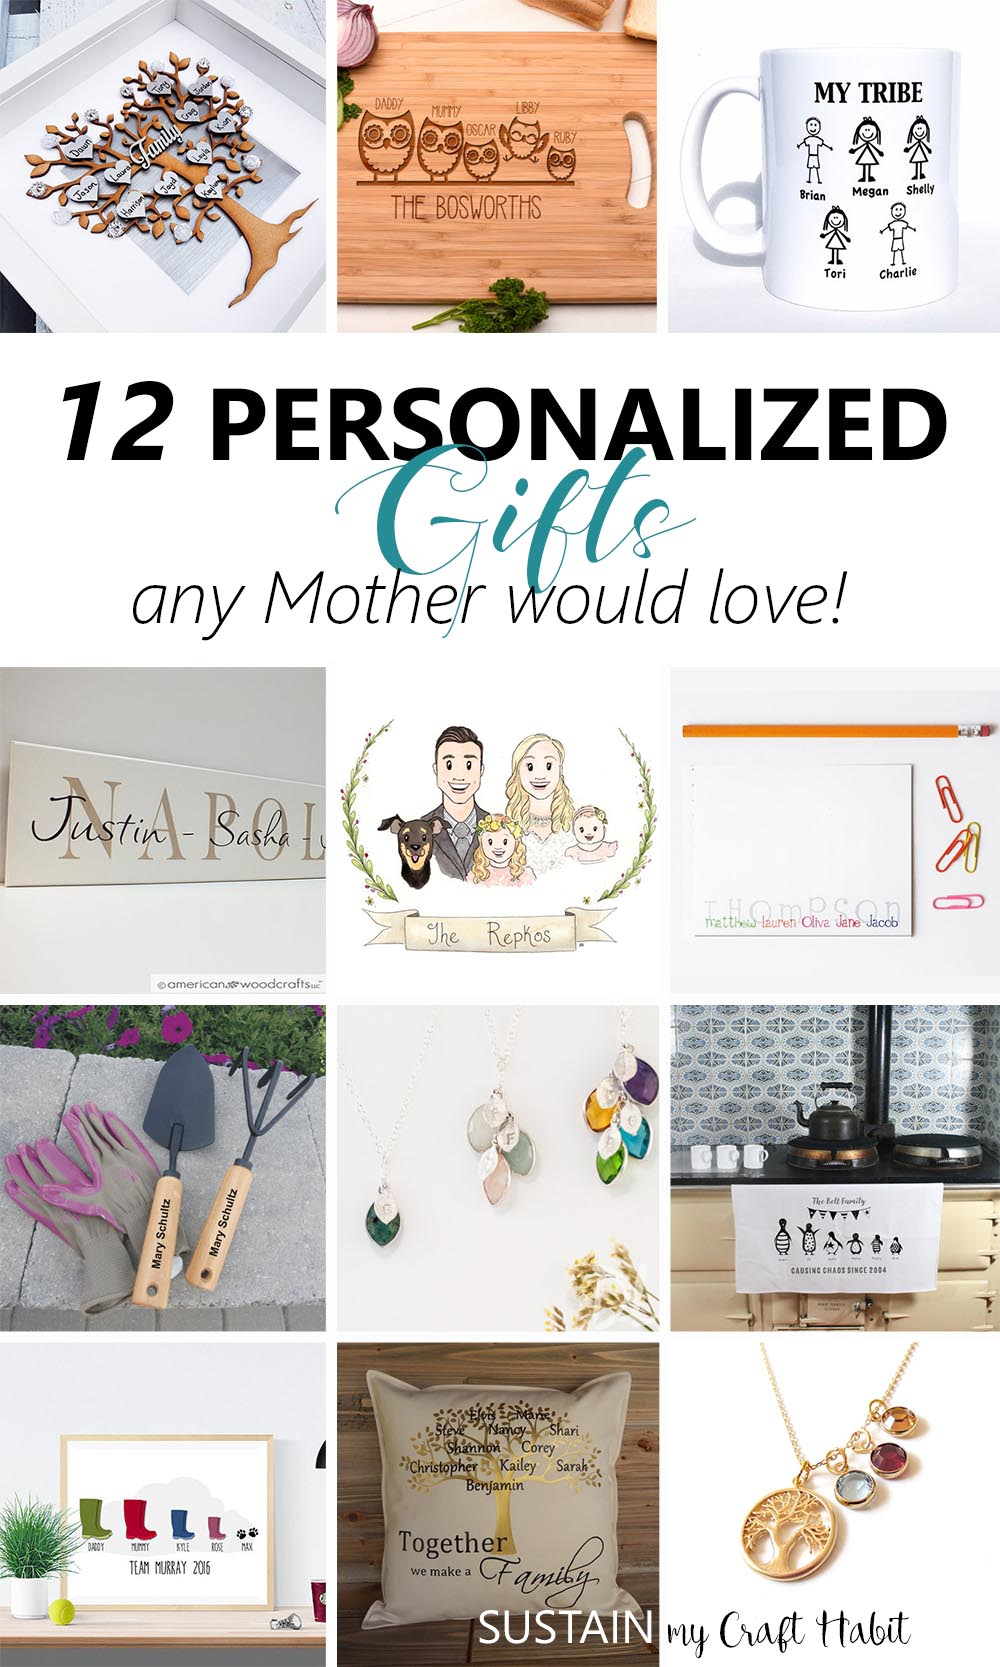 Thoughtful personalized gifts any mother would love